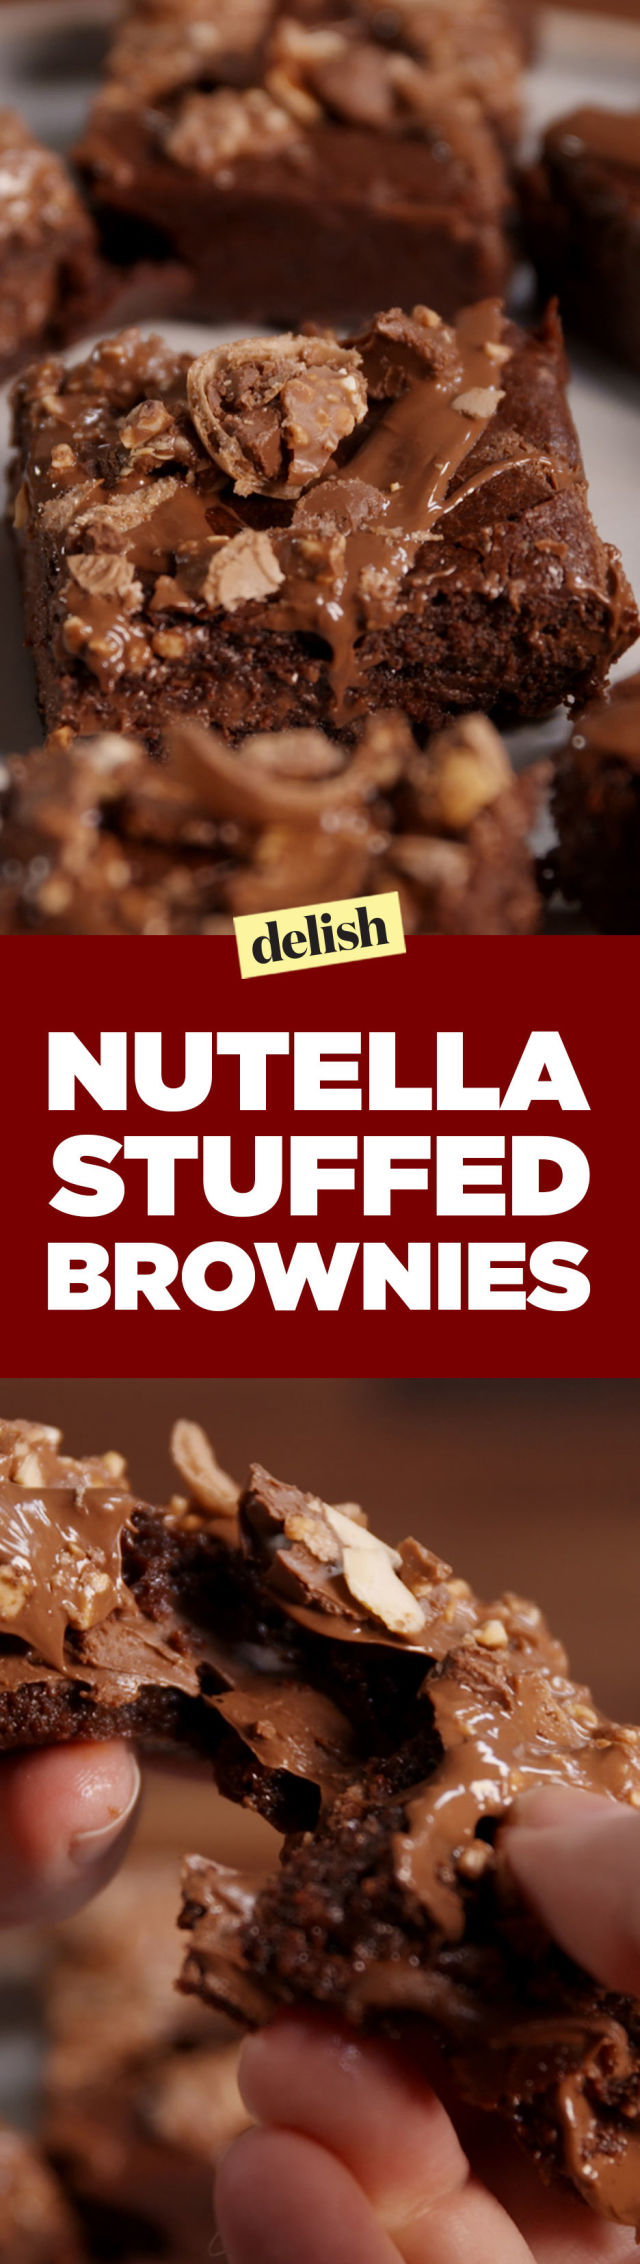 Nutella Topped Brownies Best Nutella Stuffed Brownies Recipe How To Make Nutella Stuffed